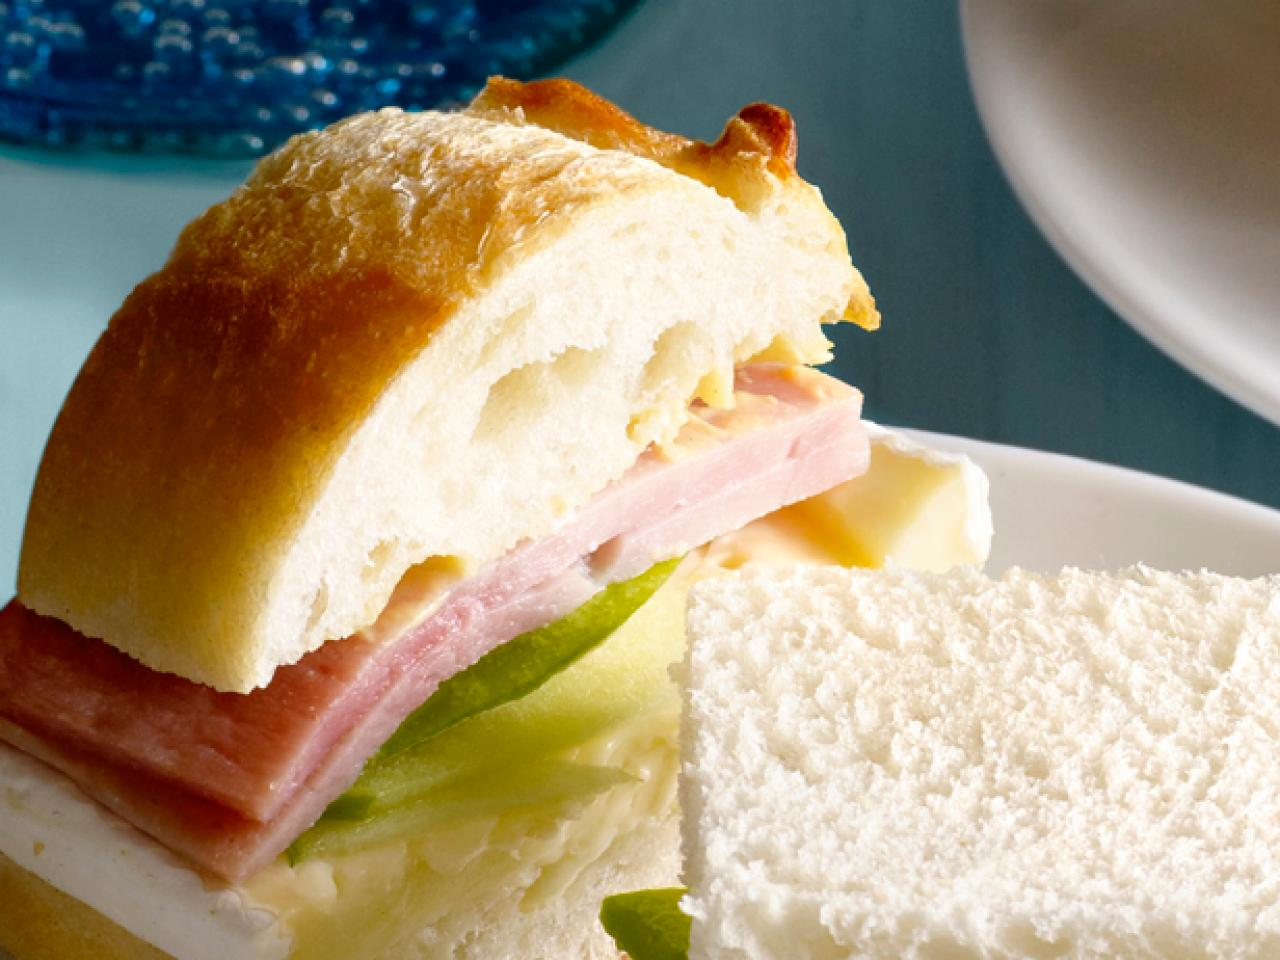 50 tea sandwiches recipes and cooking food network recipes dinners and easy meal ideas food network